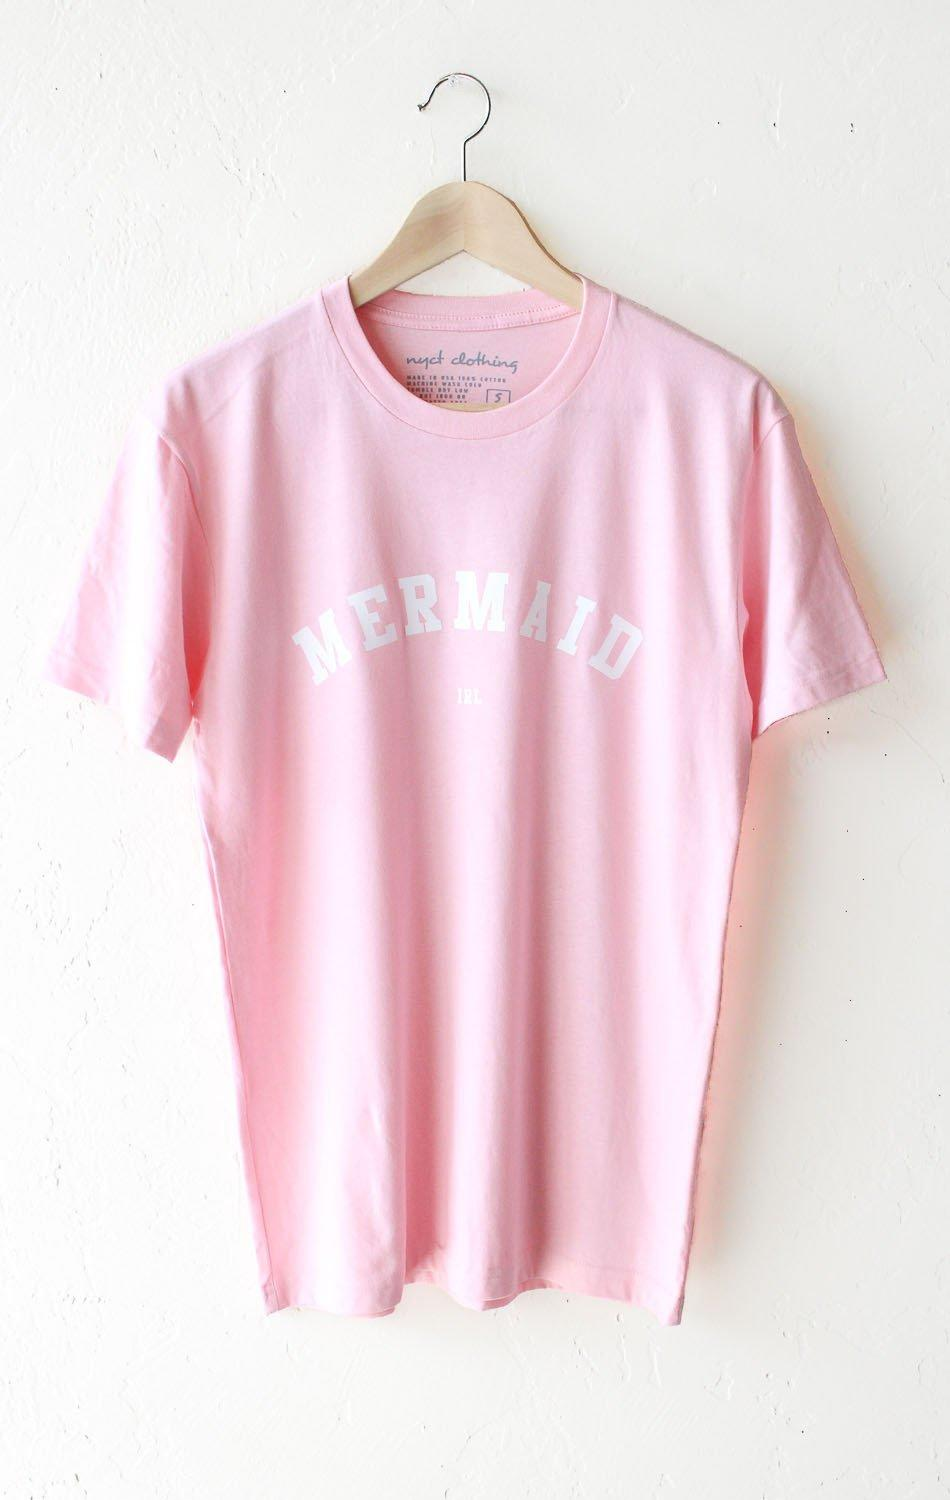 c96c4d363 Mermaid IRL Tee - Pink from NYCT Clothing | Wardrobe ✌🏼️